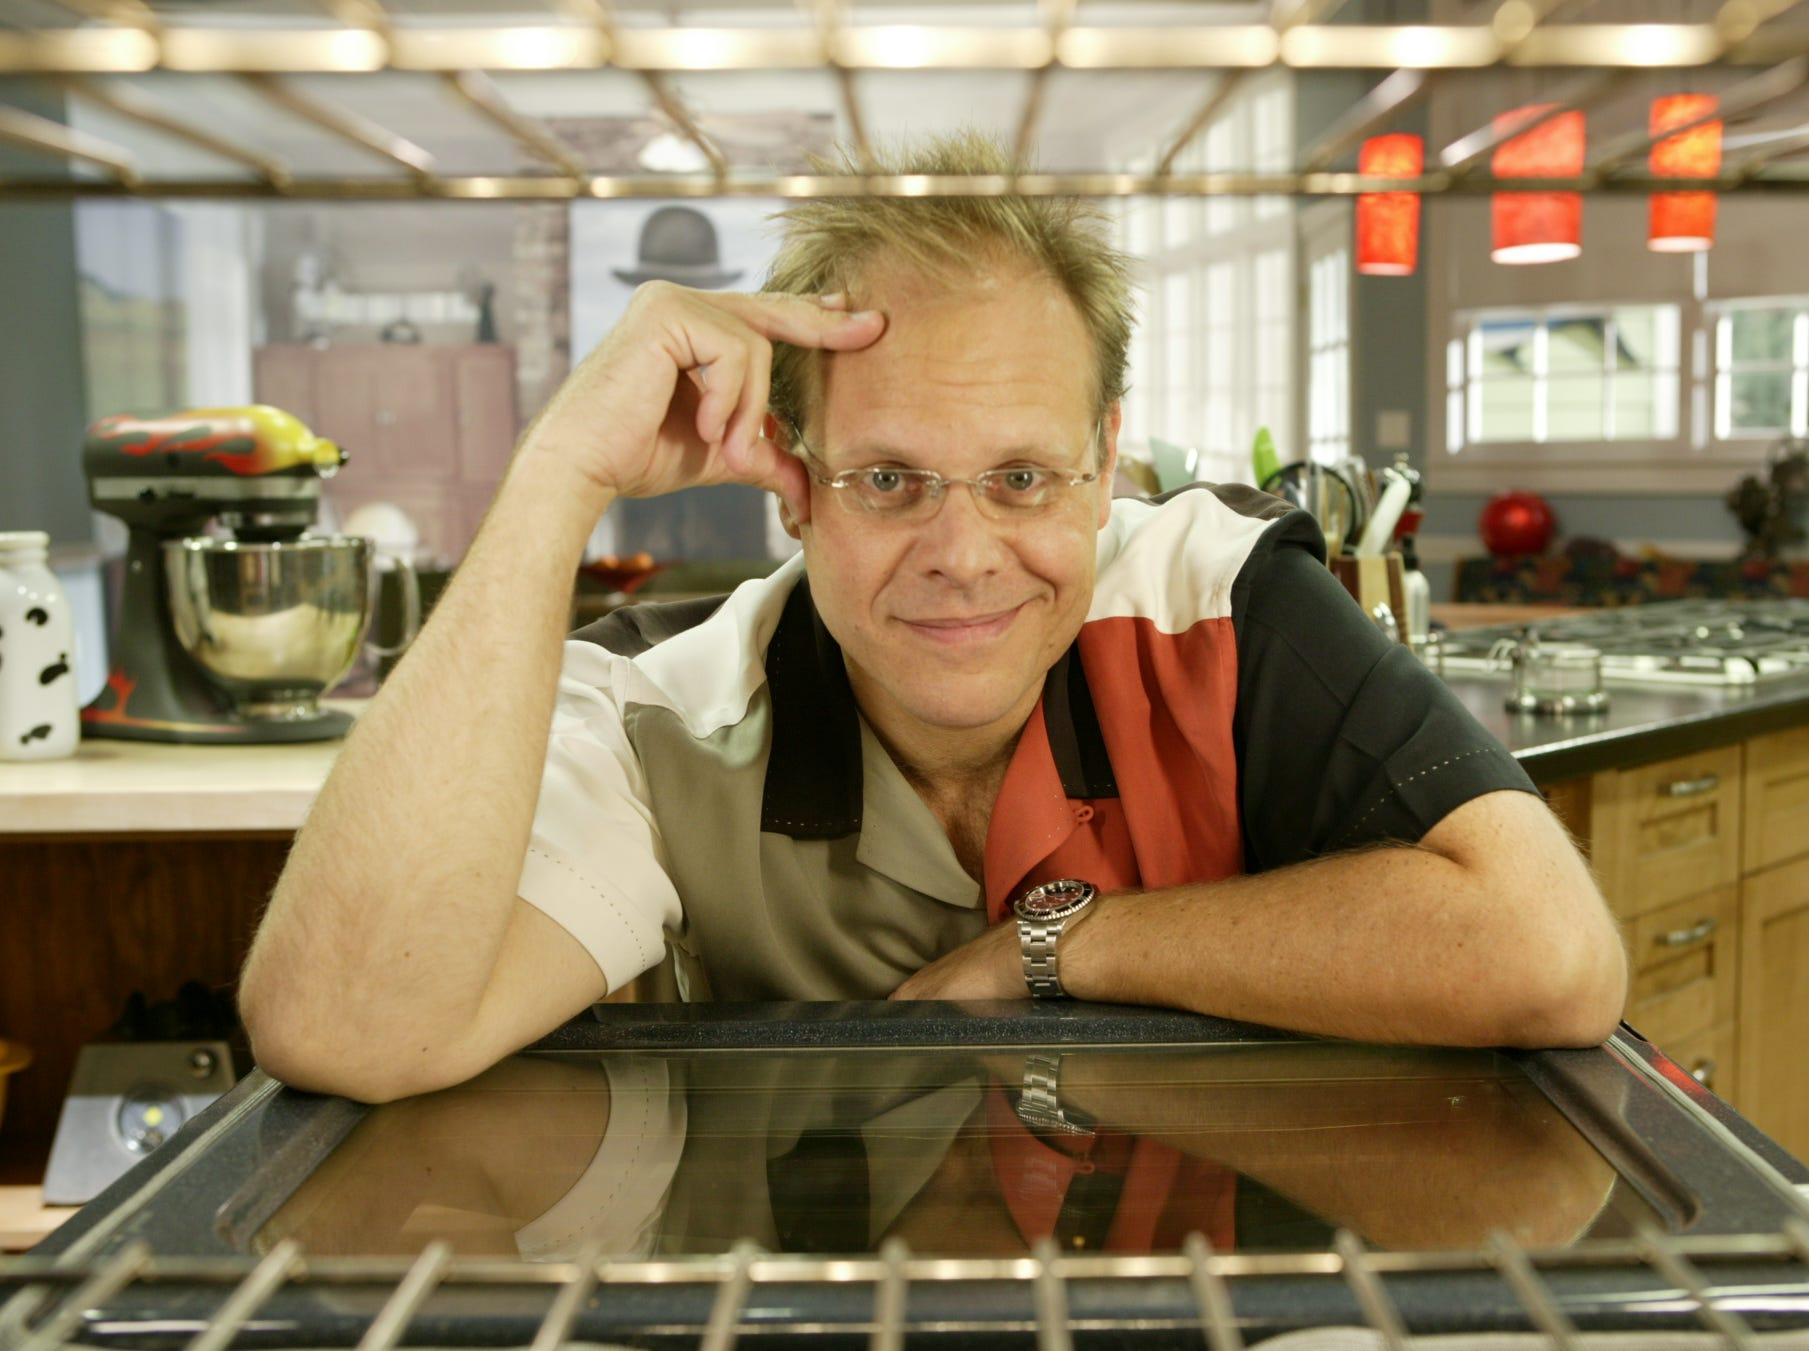 """Alton Brown as host of """"Good Eats"""" (Food Network); July 7, 1999-May 2, 2011"""